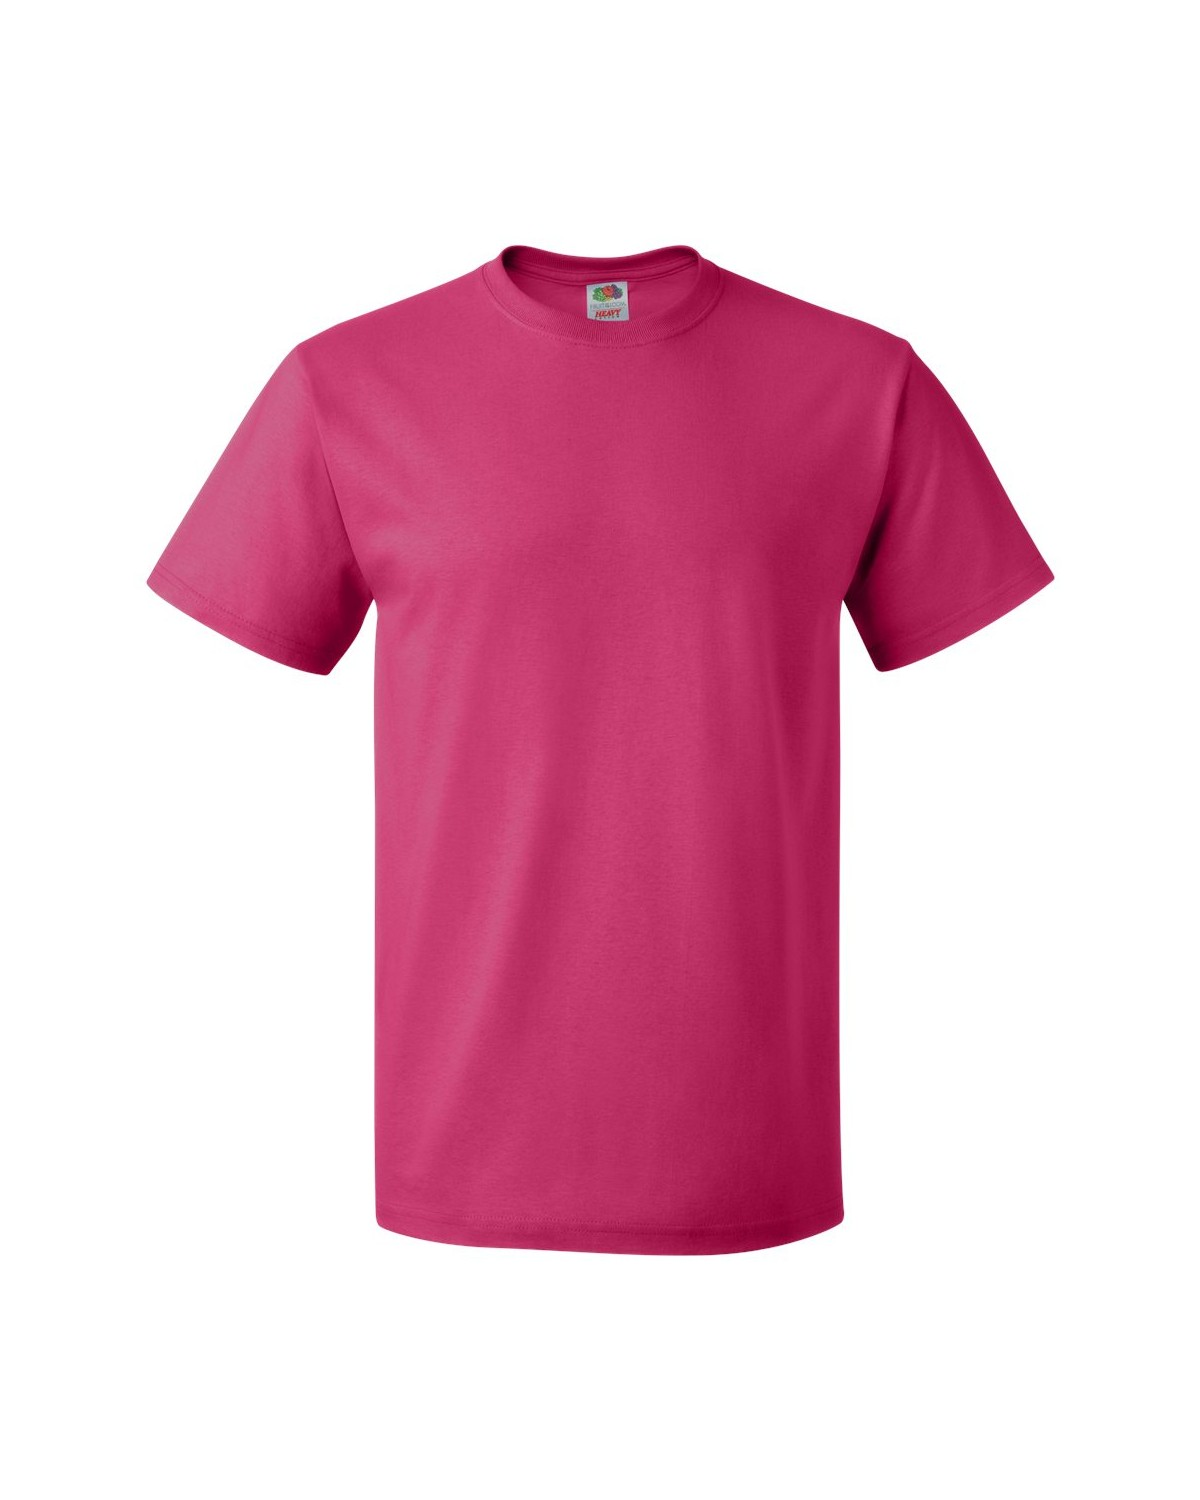 3930R Fruit of the Loom CYBER PINK